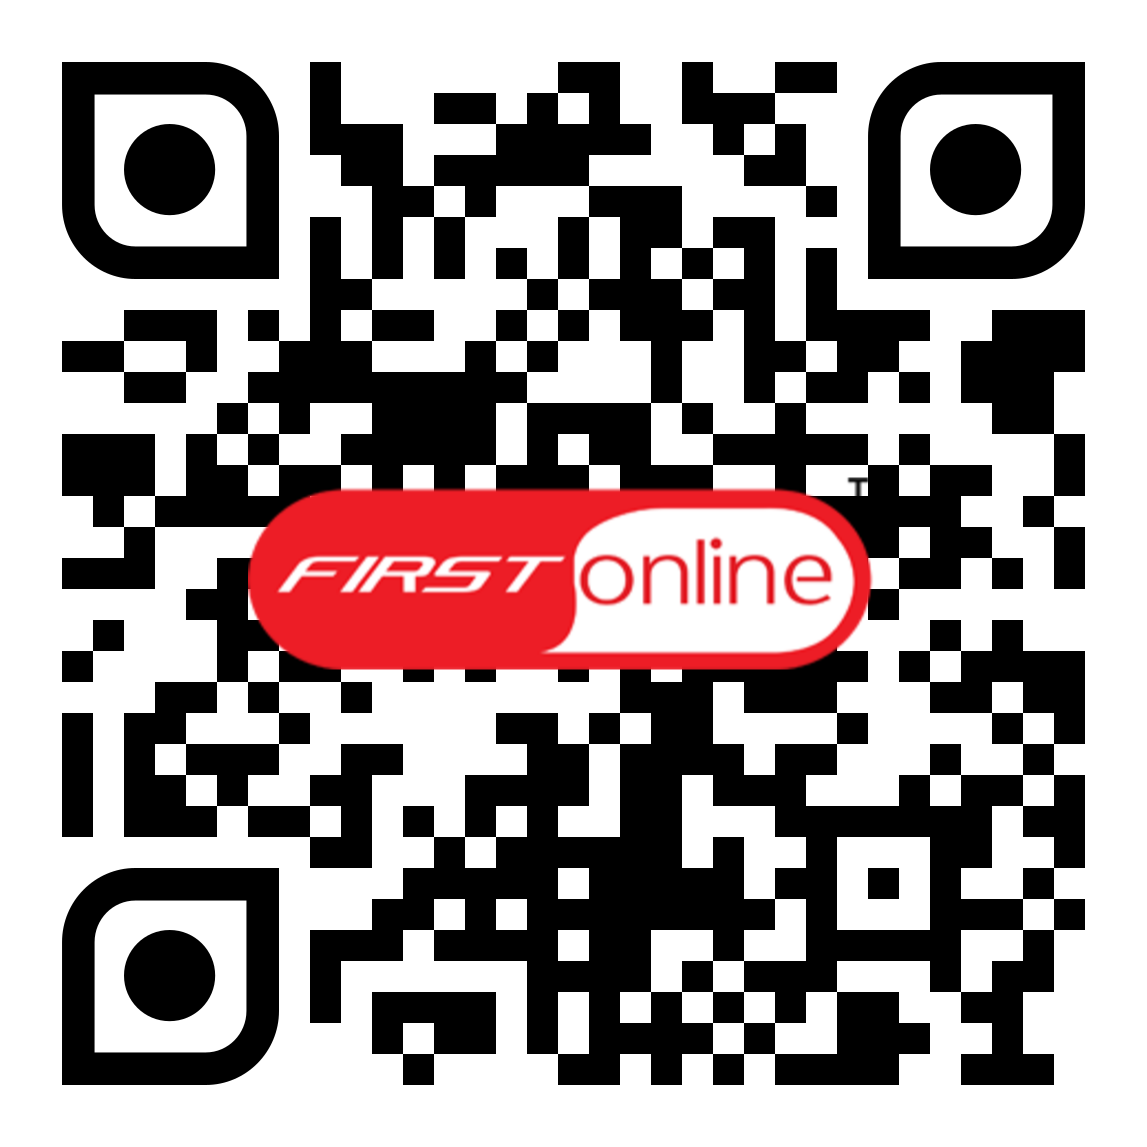 firstonline-qr-reader